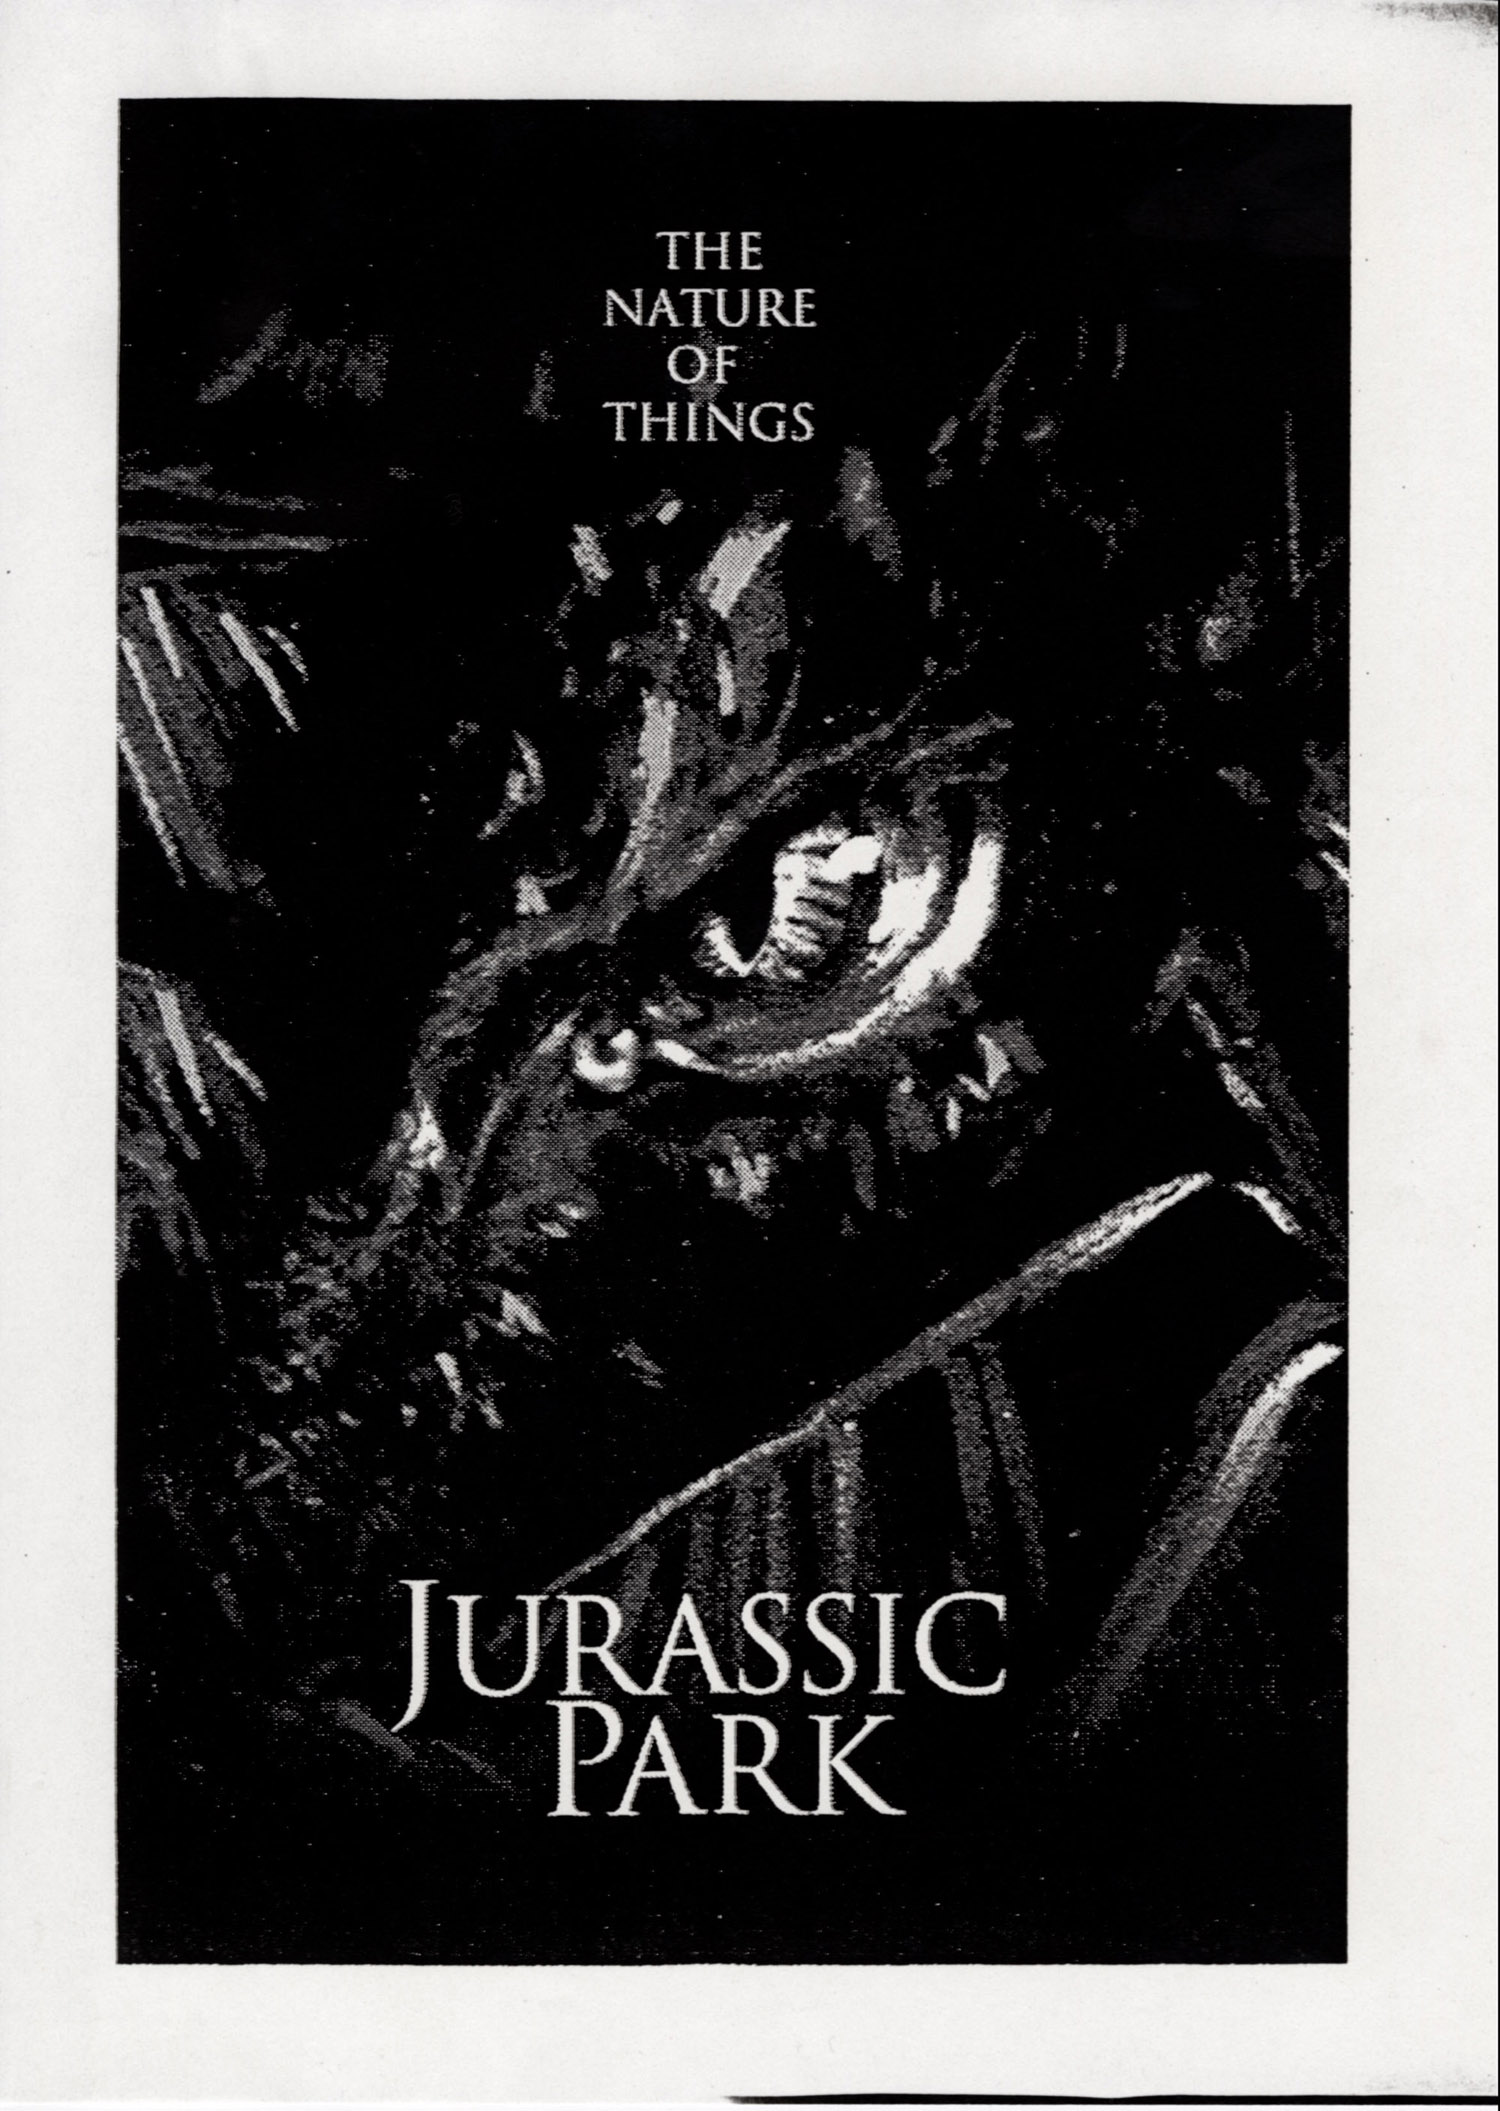 John Alvin   Jurassic Park poster   1 Exclusive: Over a Dozen Never Before Seen Jurassic Park Posters From Famous Artist John Alvin